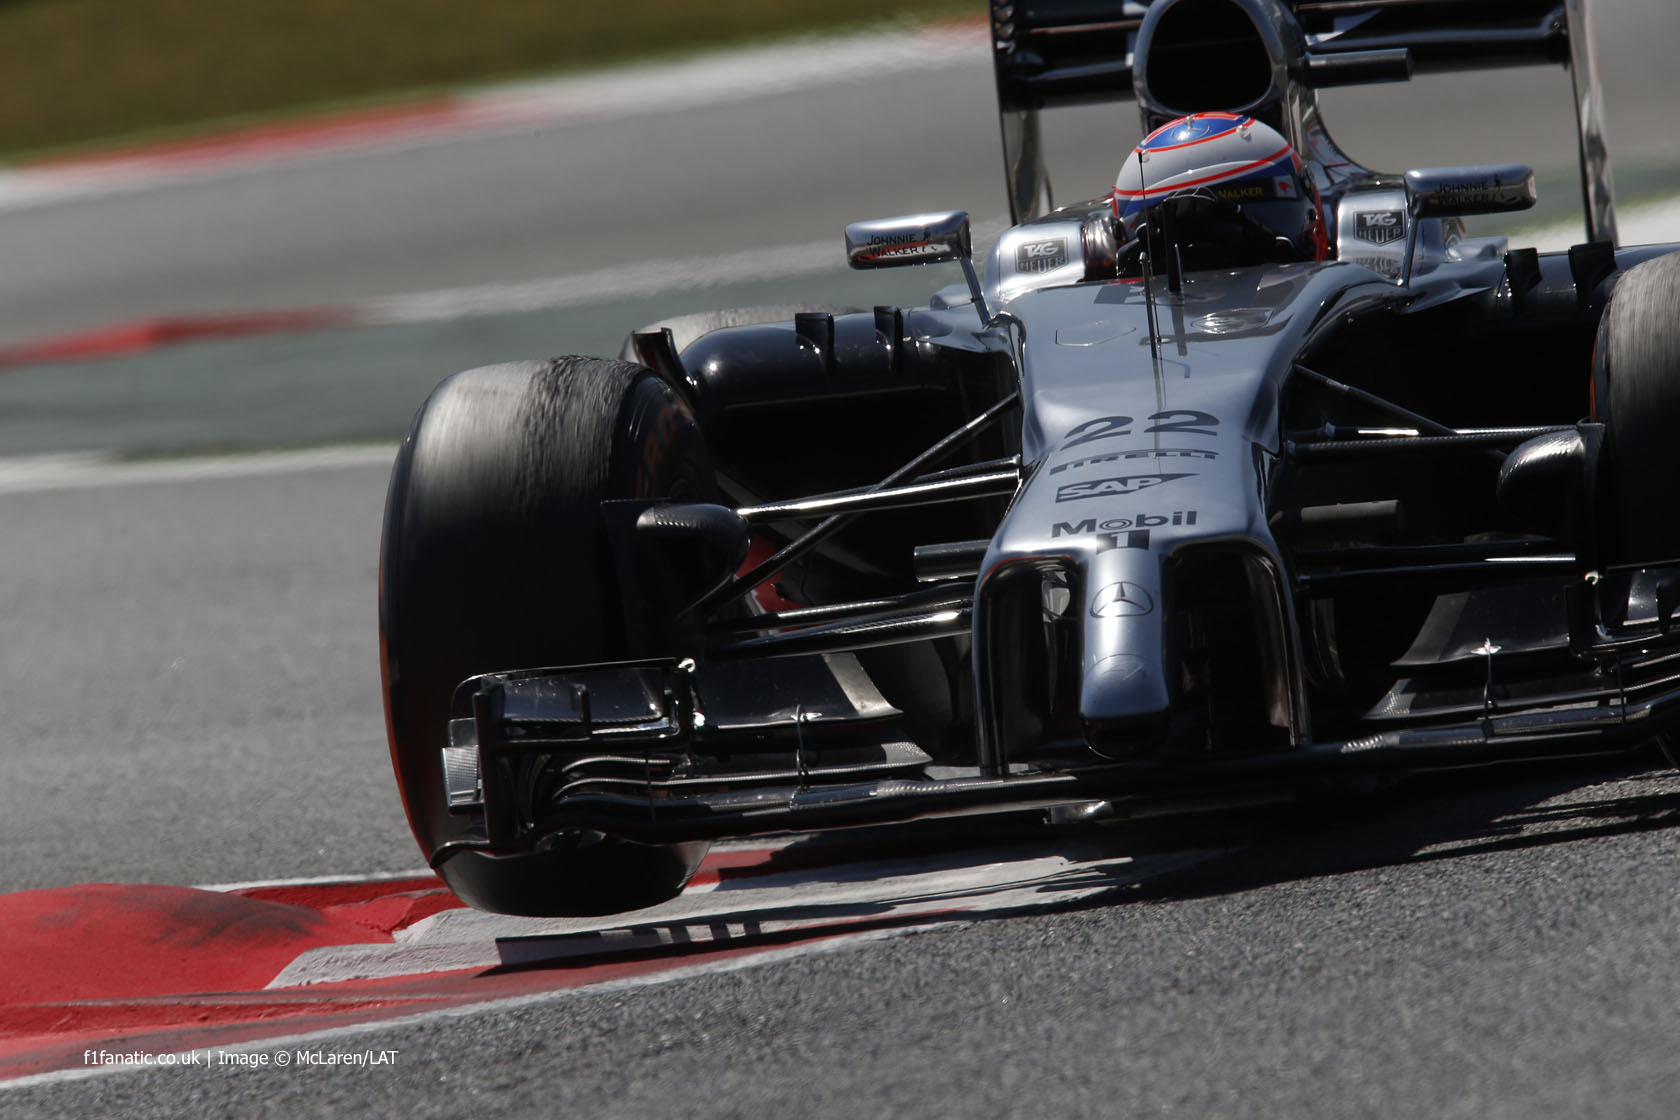 Jenson Button, McLaren, Circuit de Catalunya, 2014